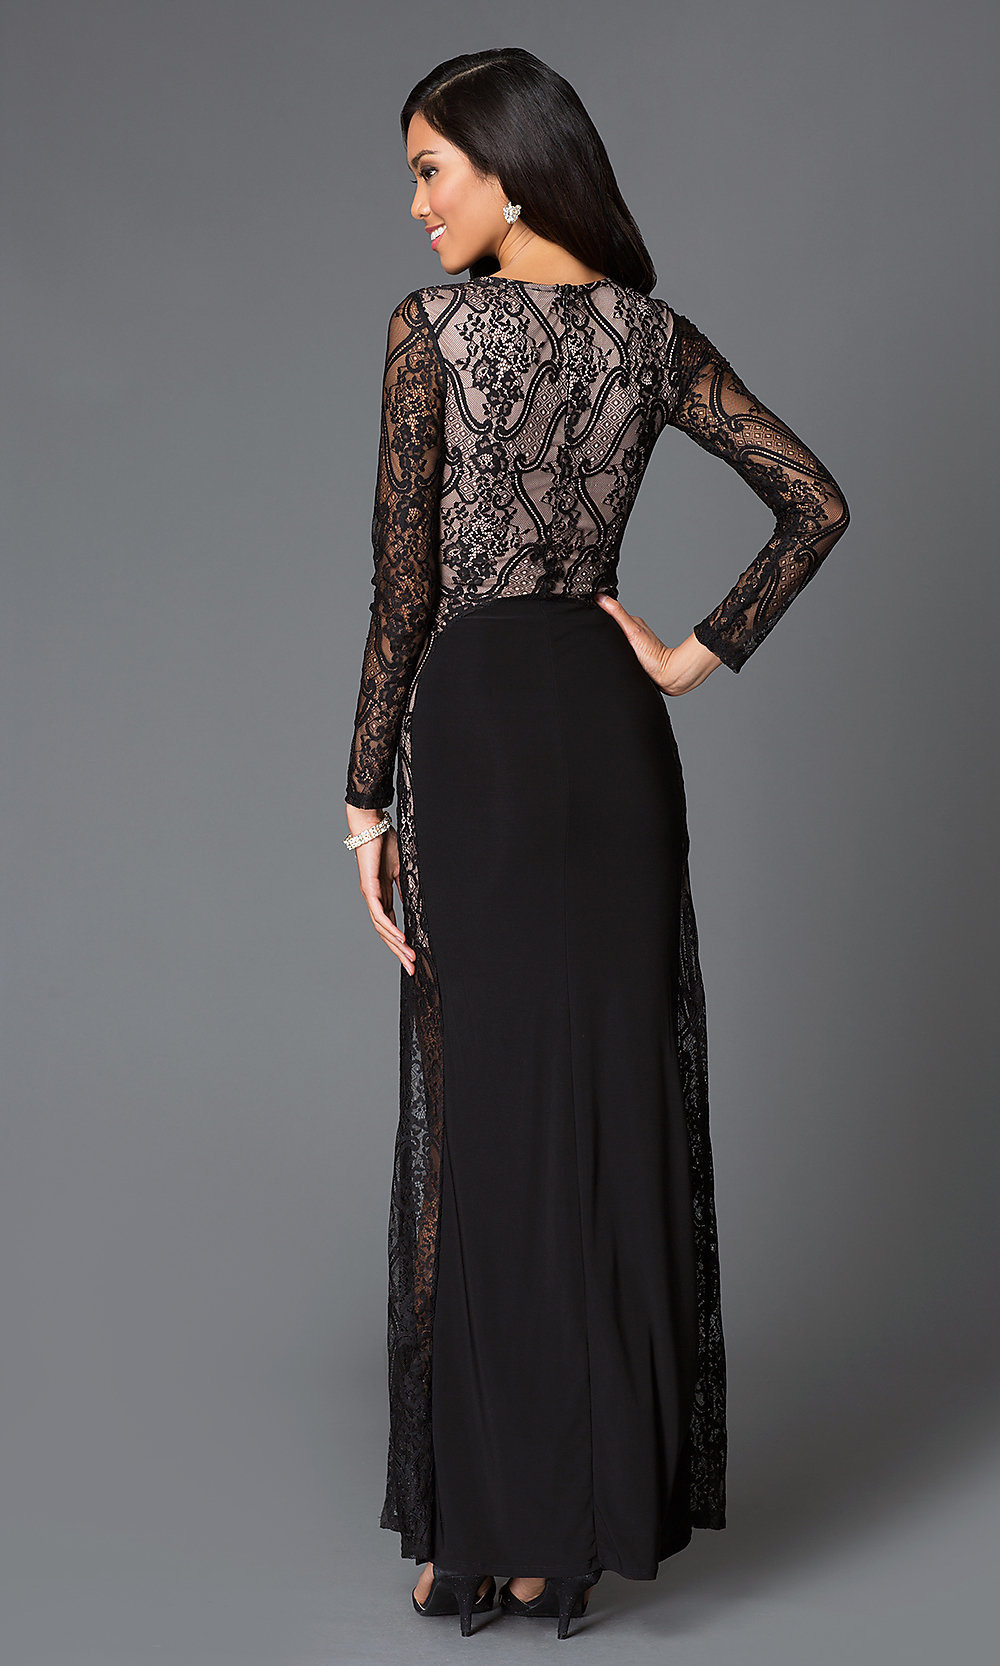 Black Long Sleeve Floor Length Lace Dress-PromGirl